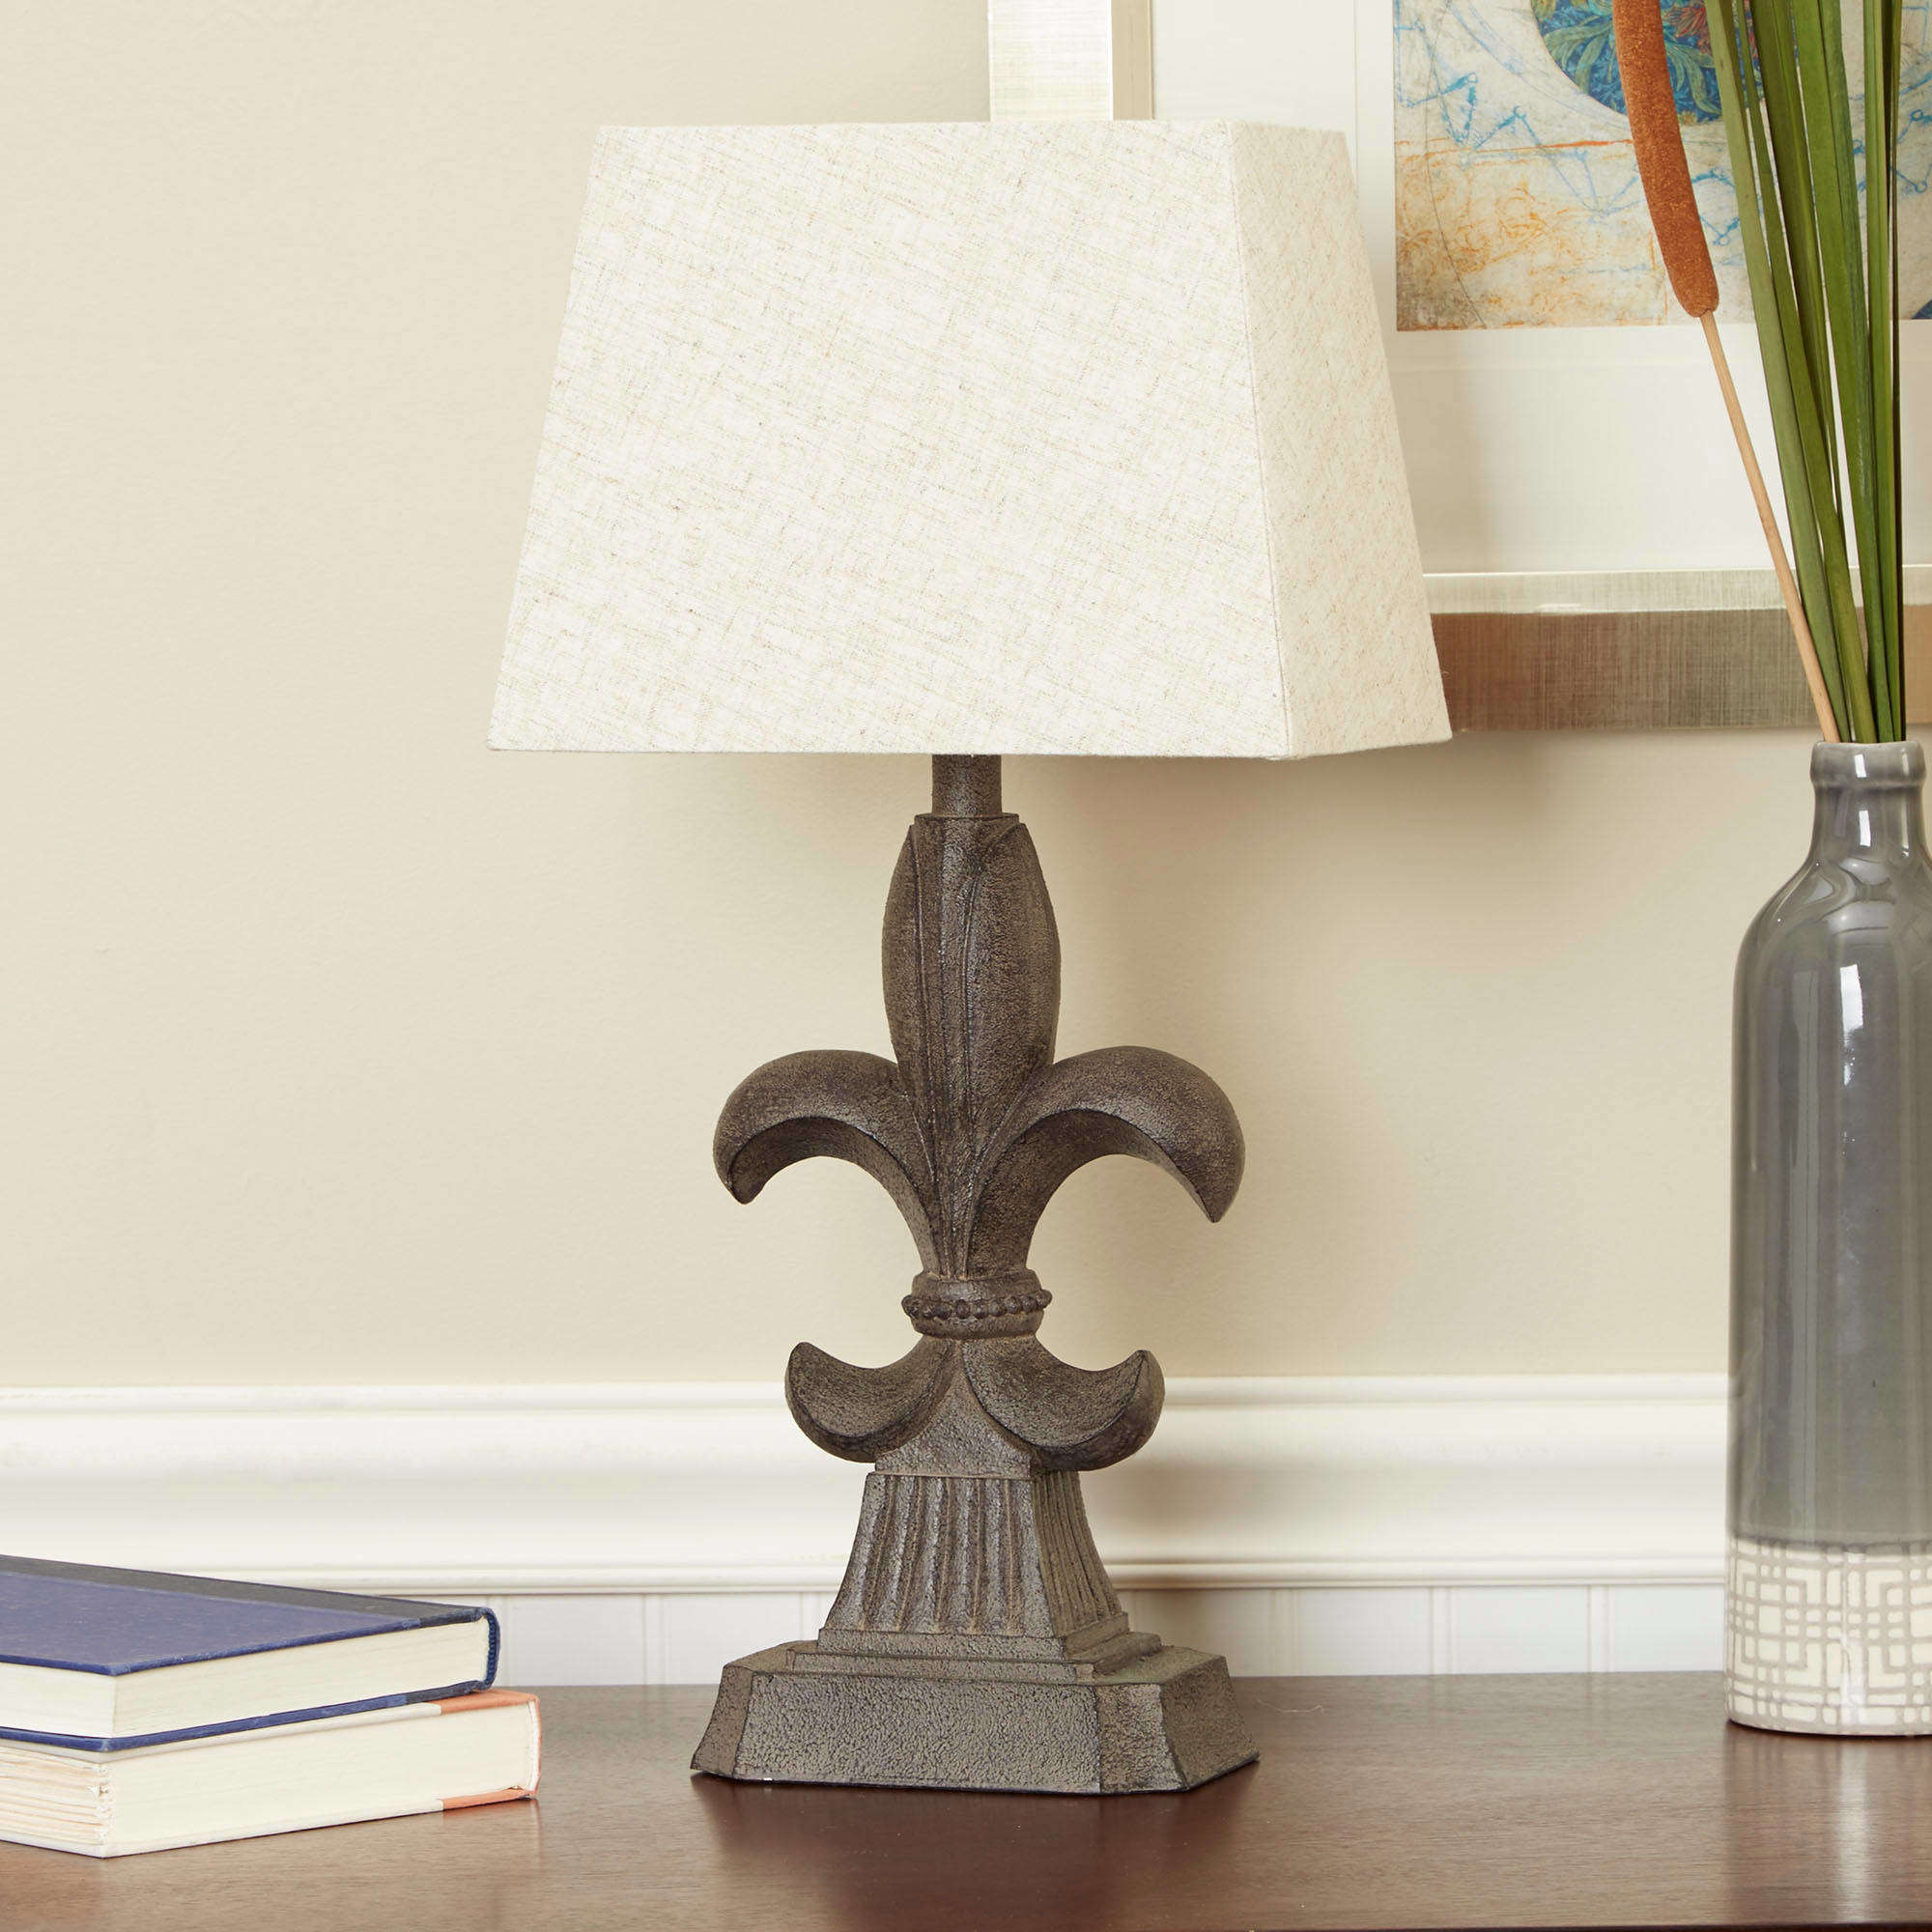 Better Homes And Gardens Fleur De Lis Accent Table Lamp With Shade